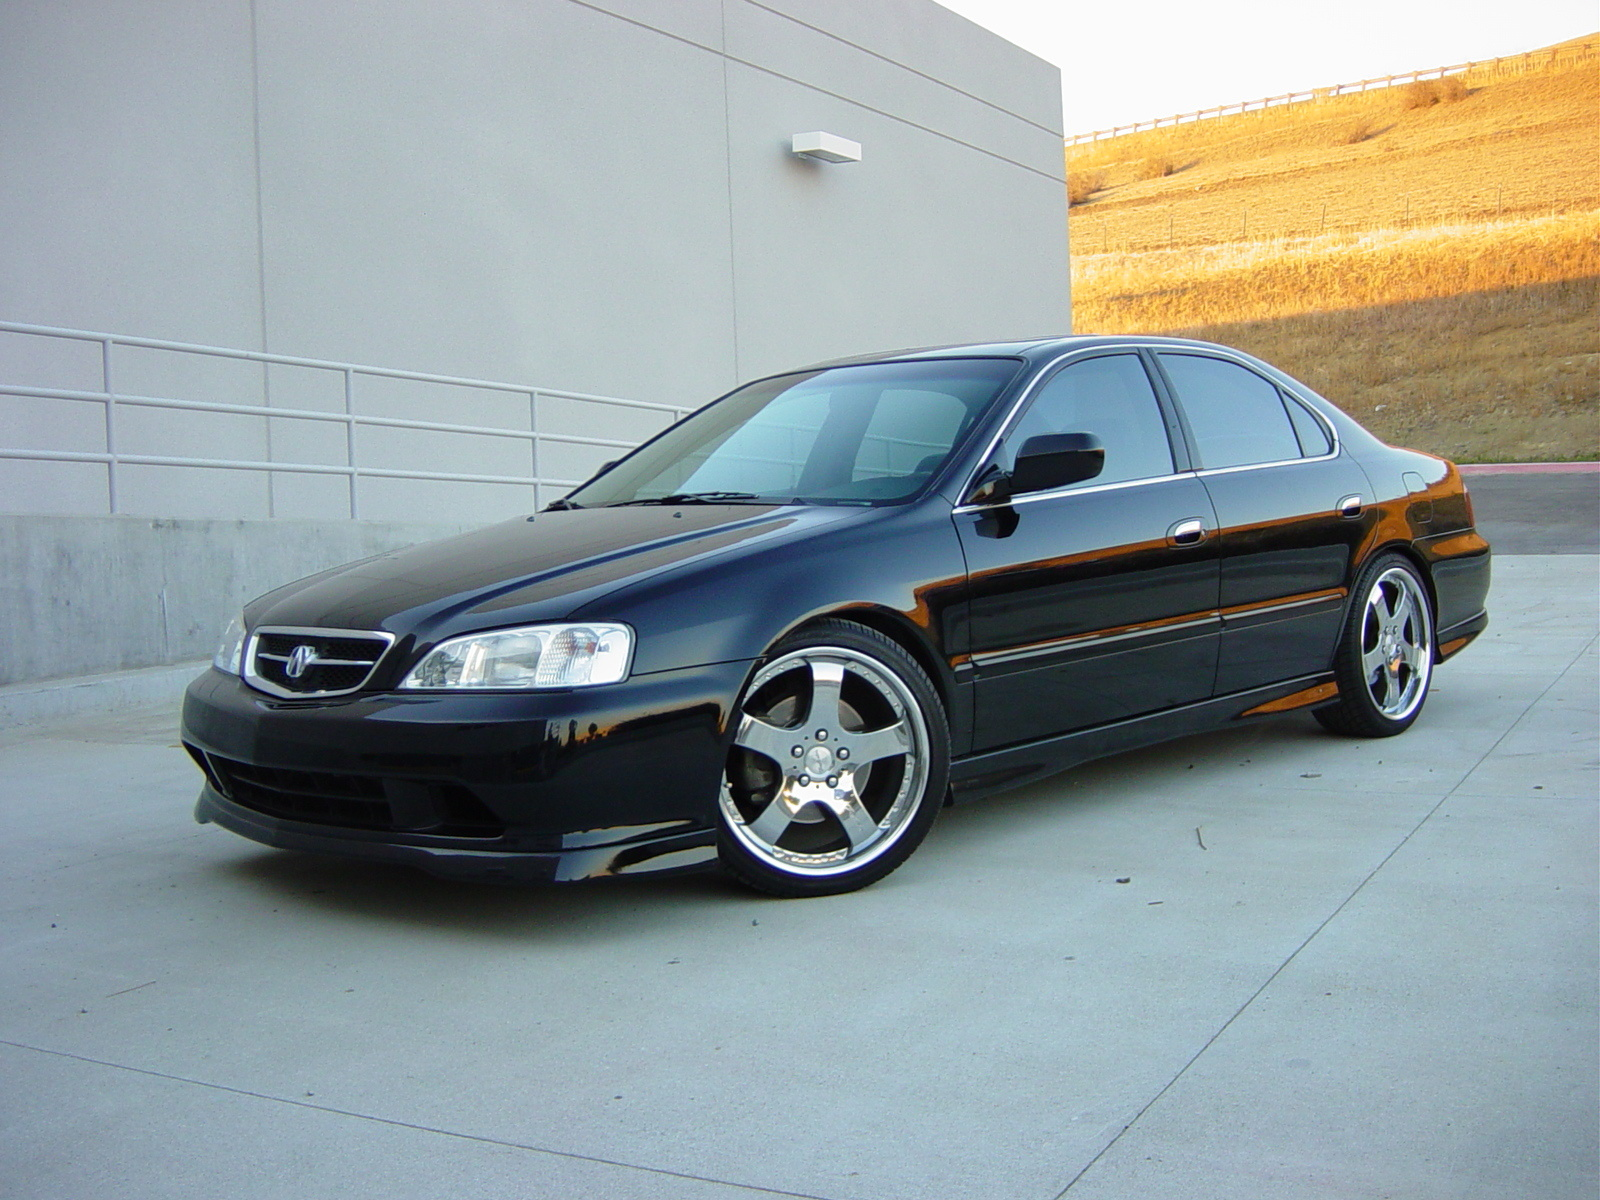 hight resolution of 2001 acura tl overview